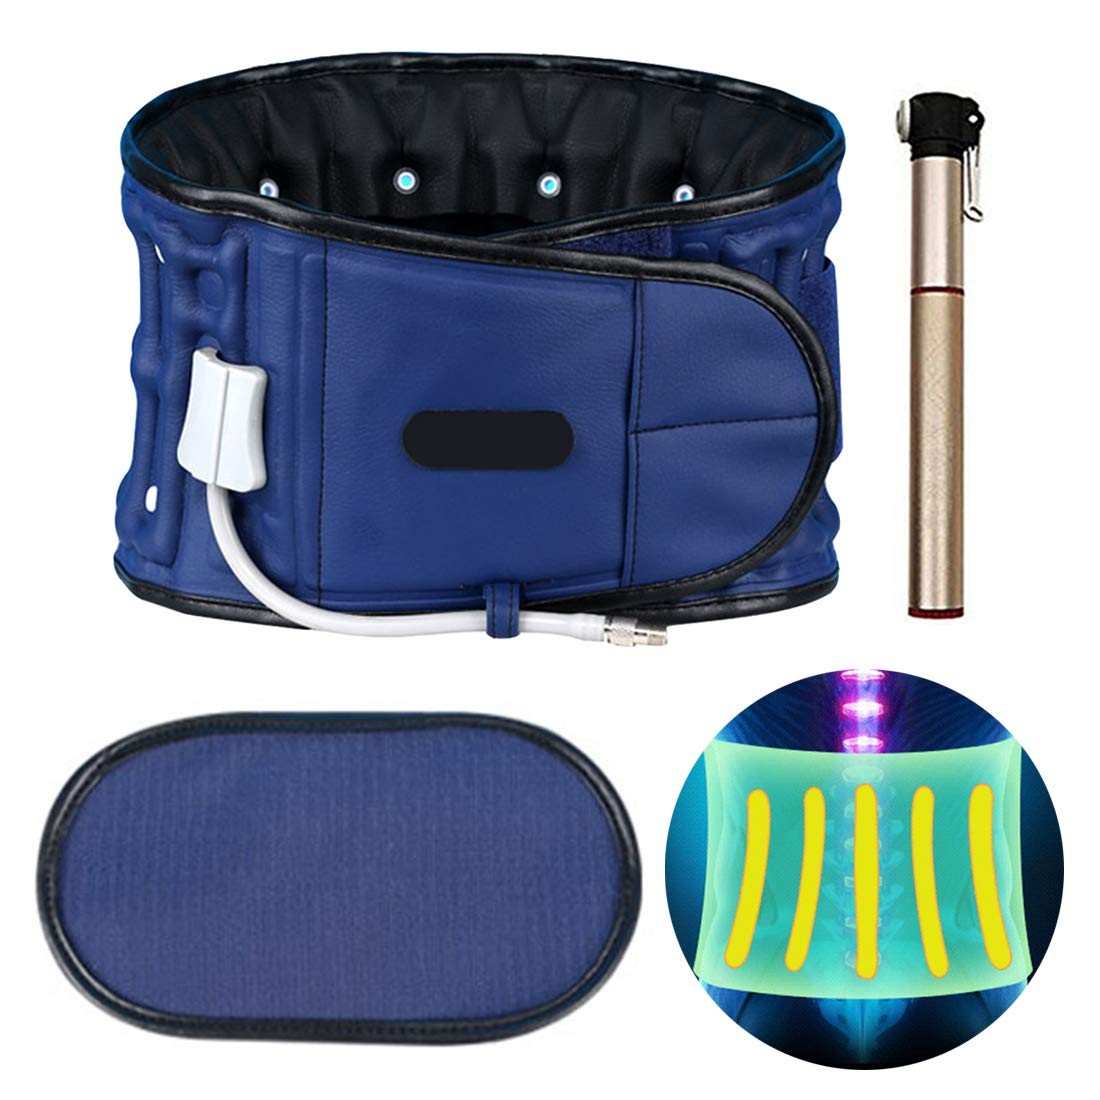 For Back Pain Relief,Decompression Lumbar Support,Spinal Air Traction Device with Back Brace Back Pain.(29-49 inch) (Blue)